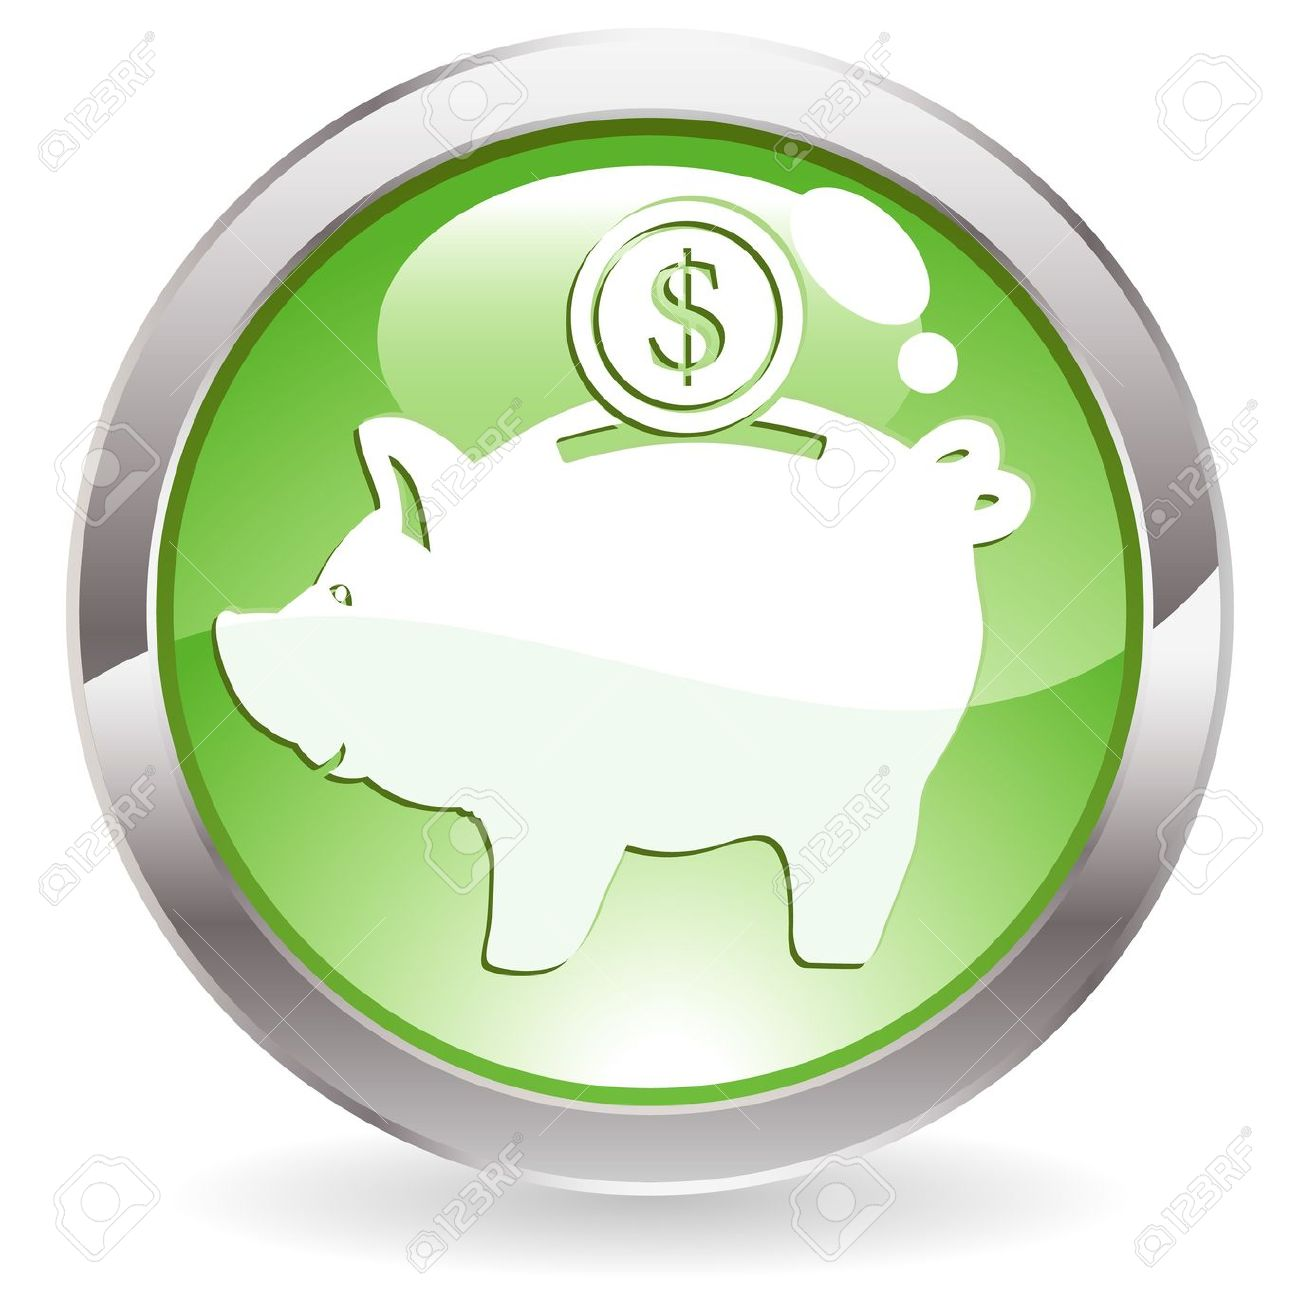 Green bank clipart svg royalty free stock Three Dimensional Circle Button With Piggy Bank Icon, Illustration ... svg royalty free stock